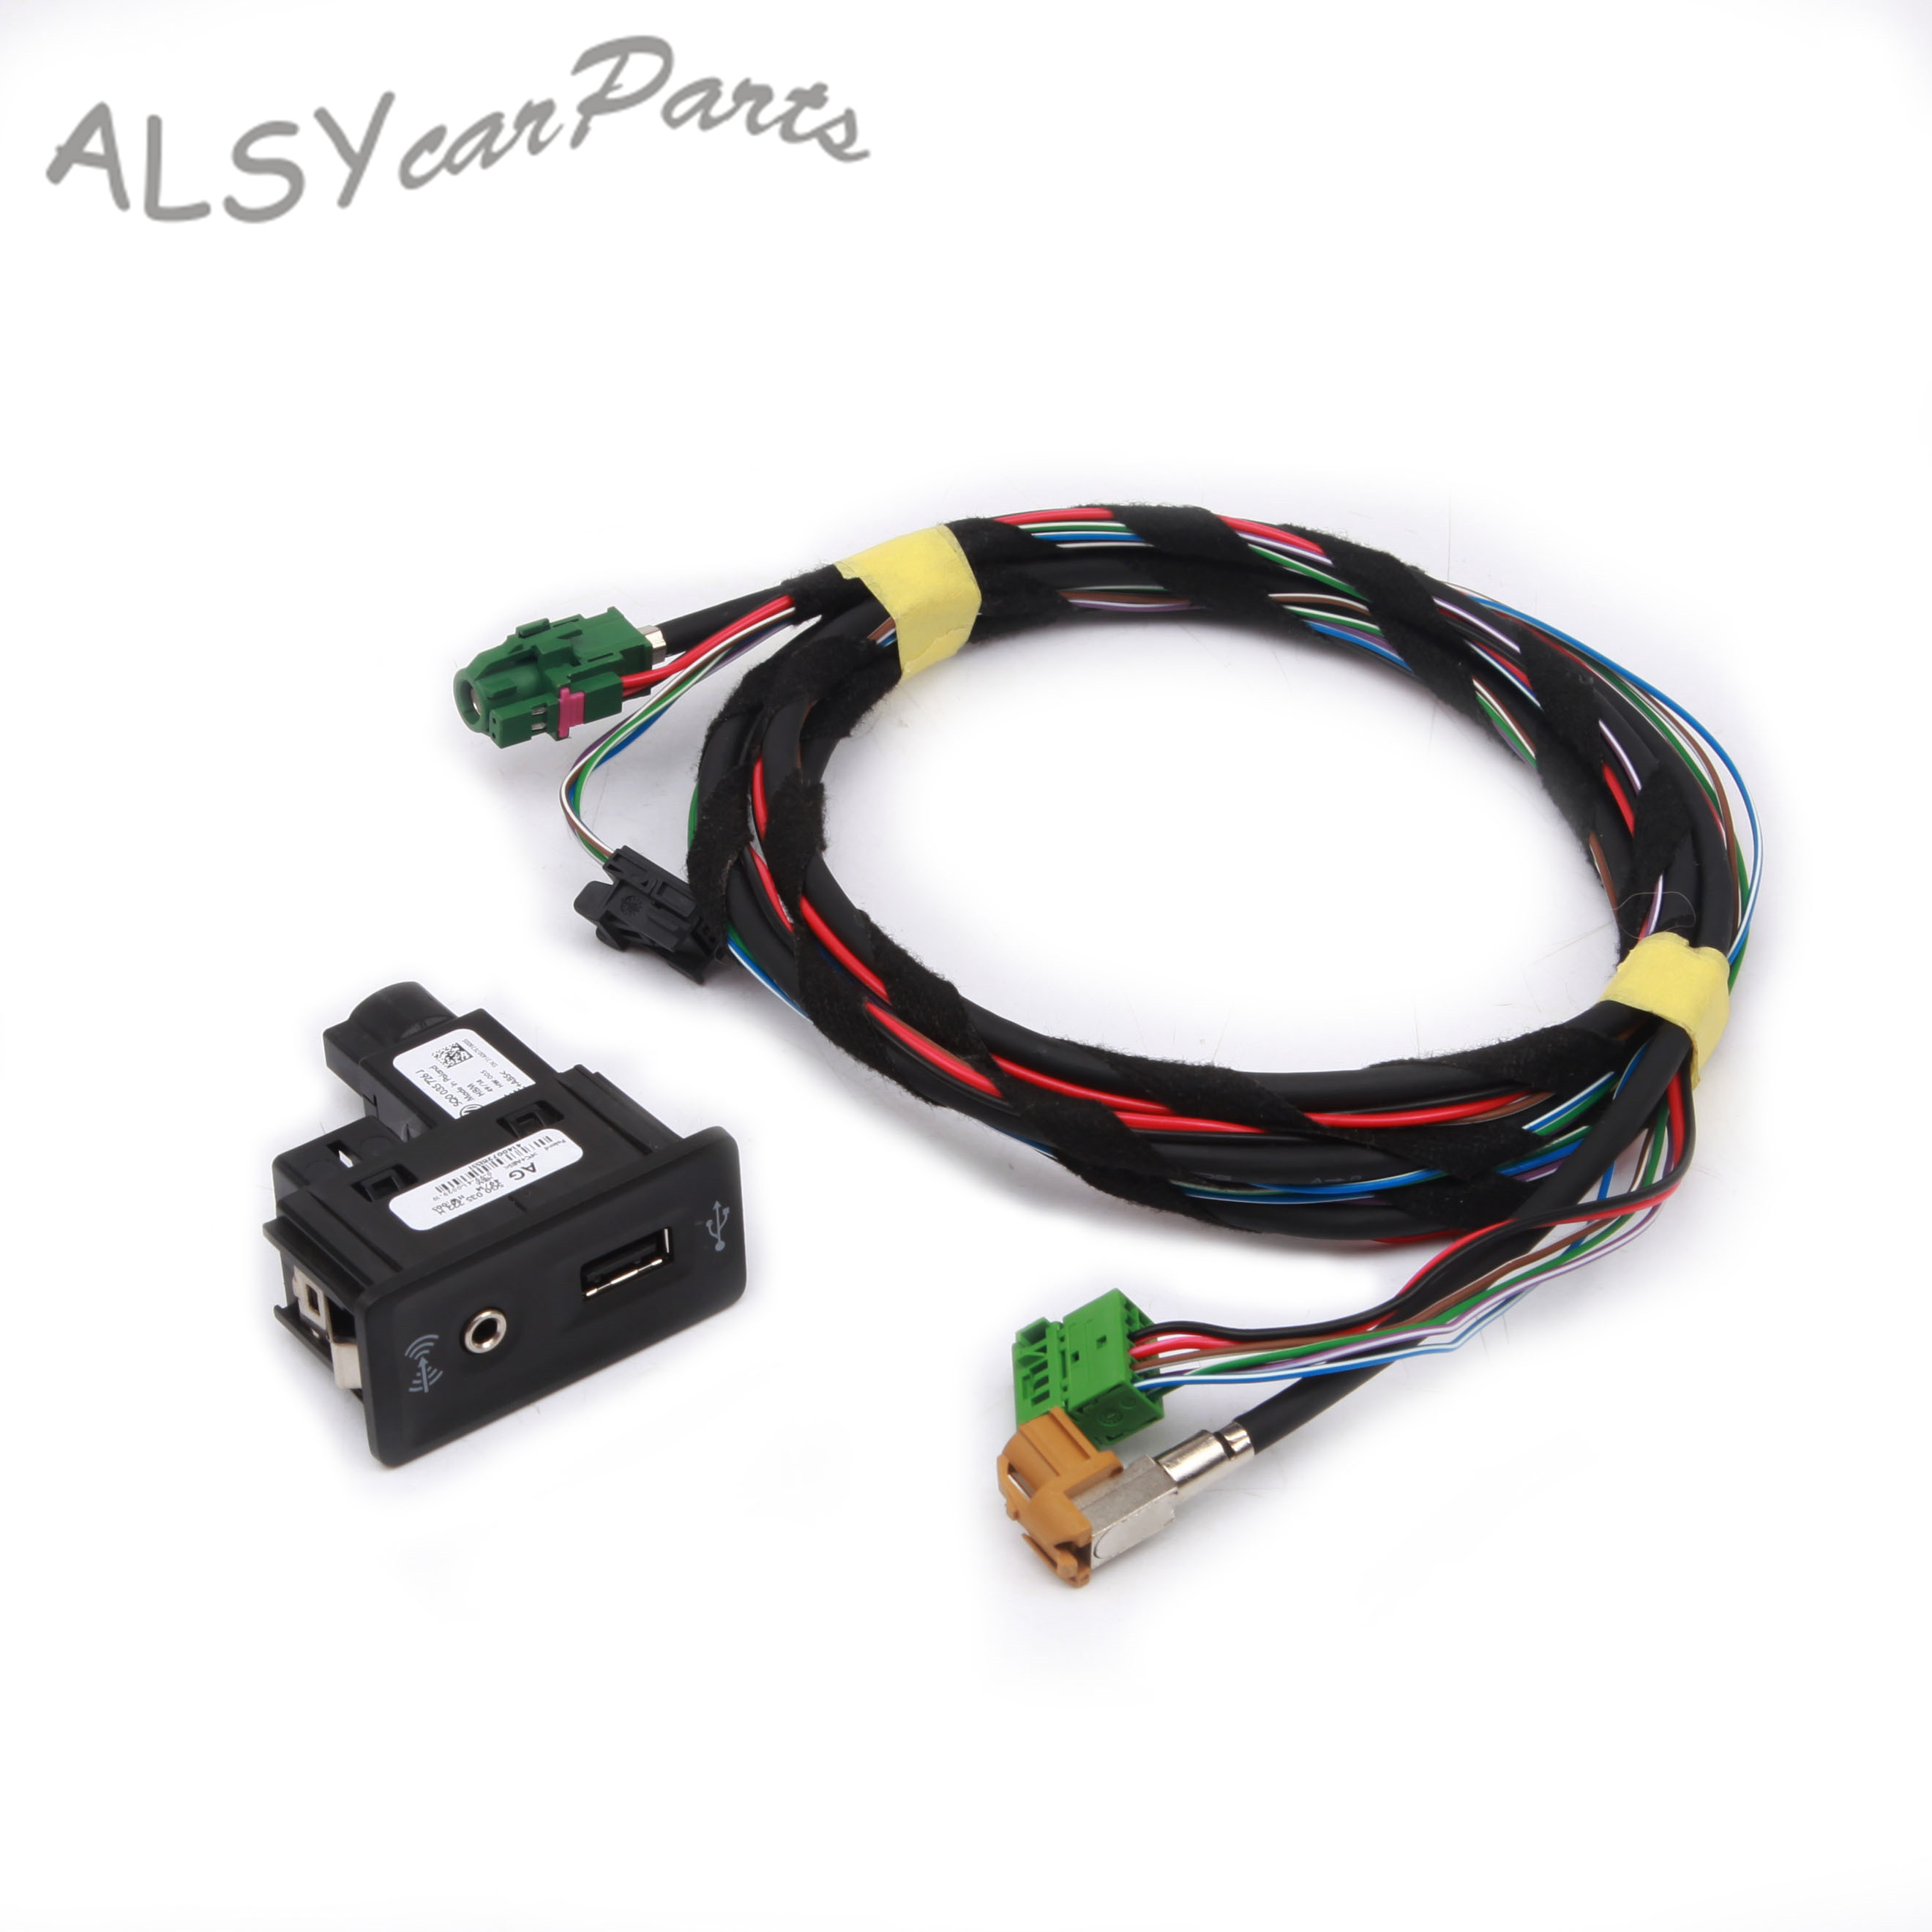 YMM 5G0 035 222 F Switch Plug Harness Set CarPlay MDI <font><b>USB</b></font> AMI Install Plug Socket For <font><b>VW</b></font> <font><b>Golf</b></font> <font><b>7</b></font> MkII 5G0035222H 5Q0 035 726 E image